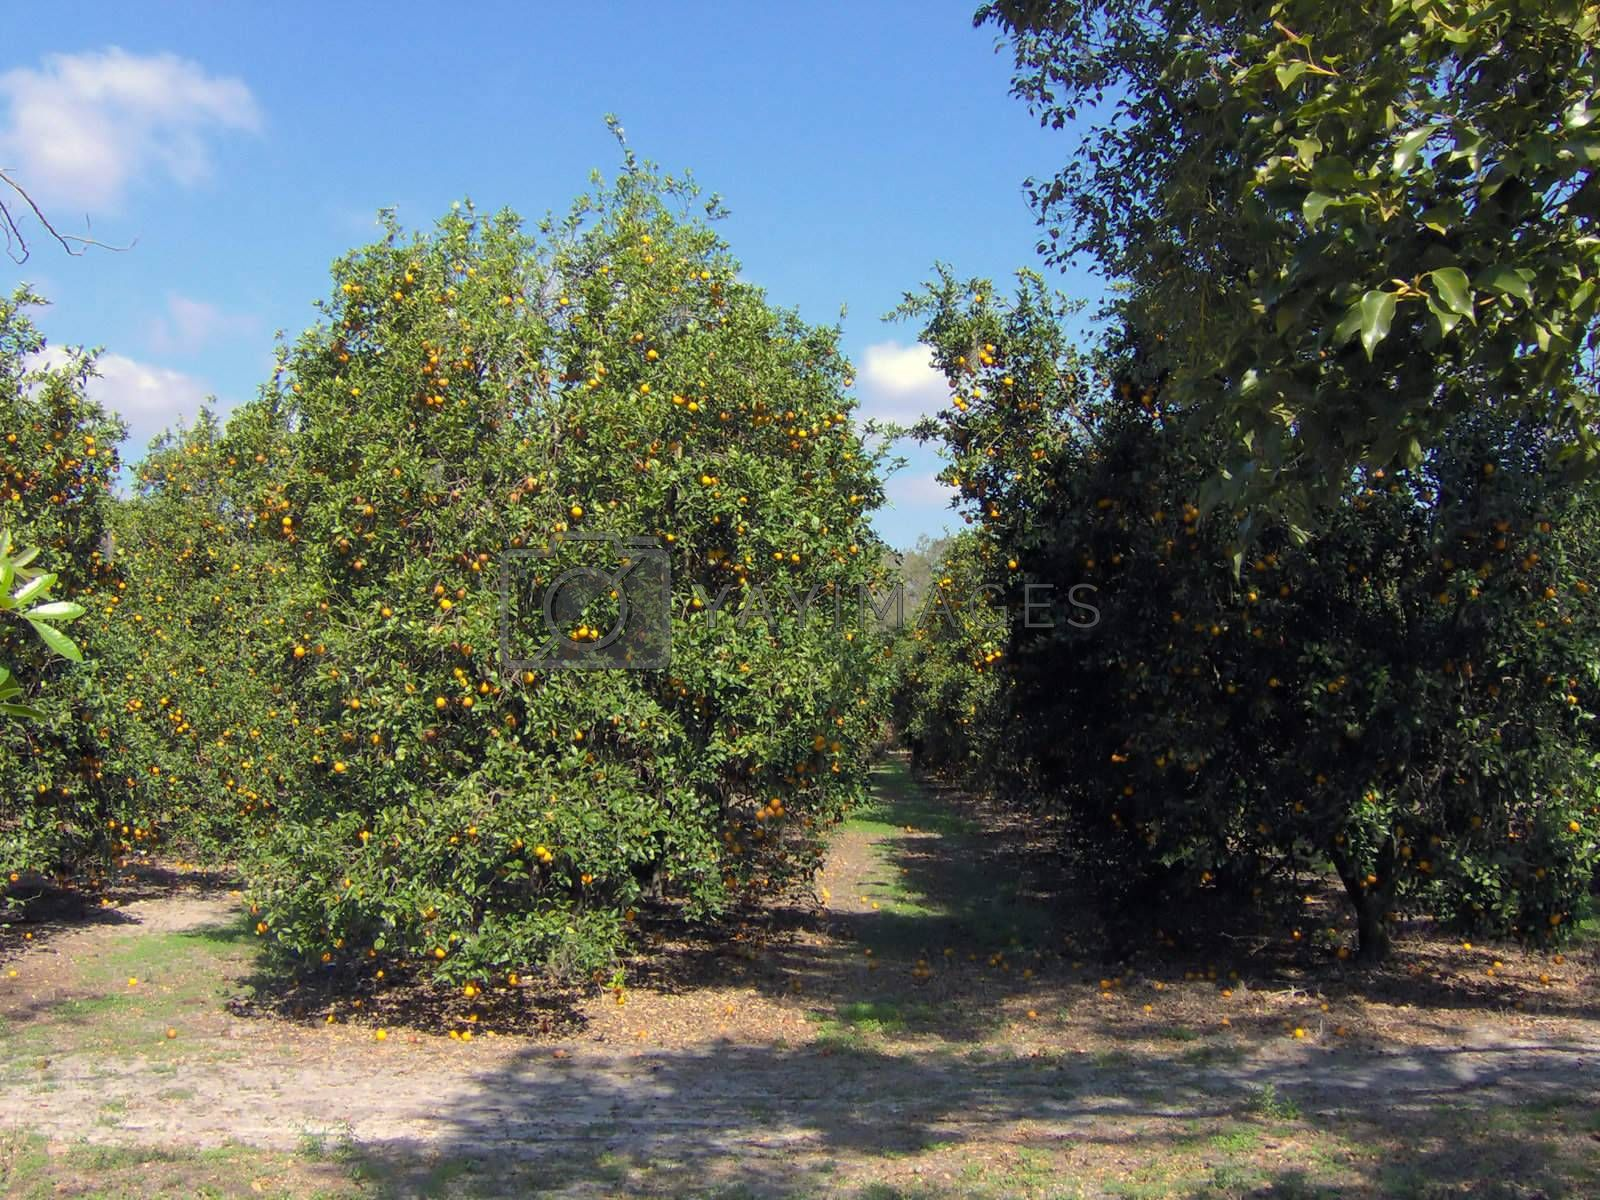 I shot this in Kissimmee / Orlando Florida, behind a flea market parking lot.  There was a huge, beautiful field of oranges.